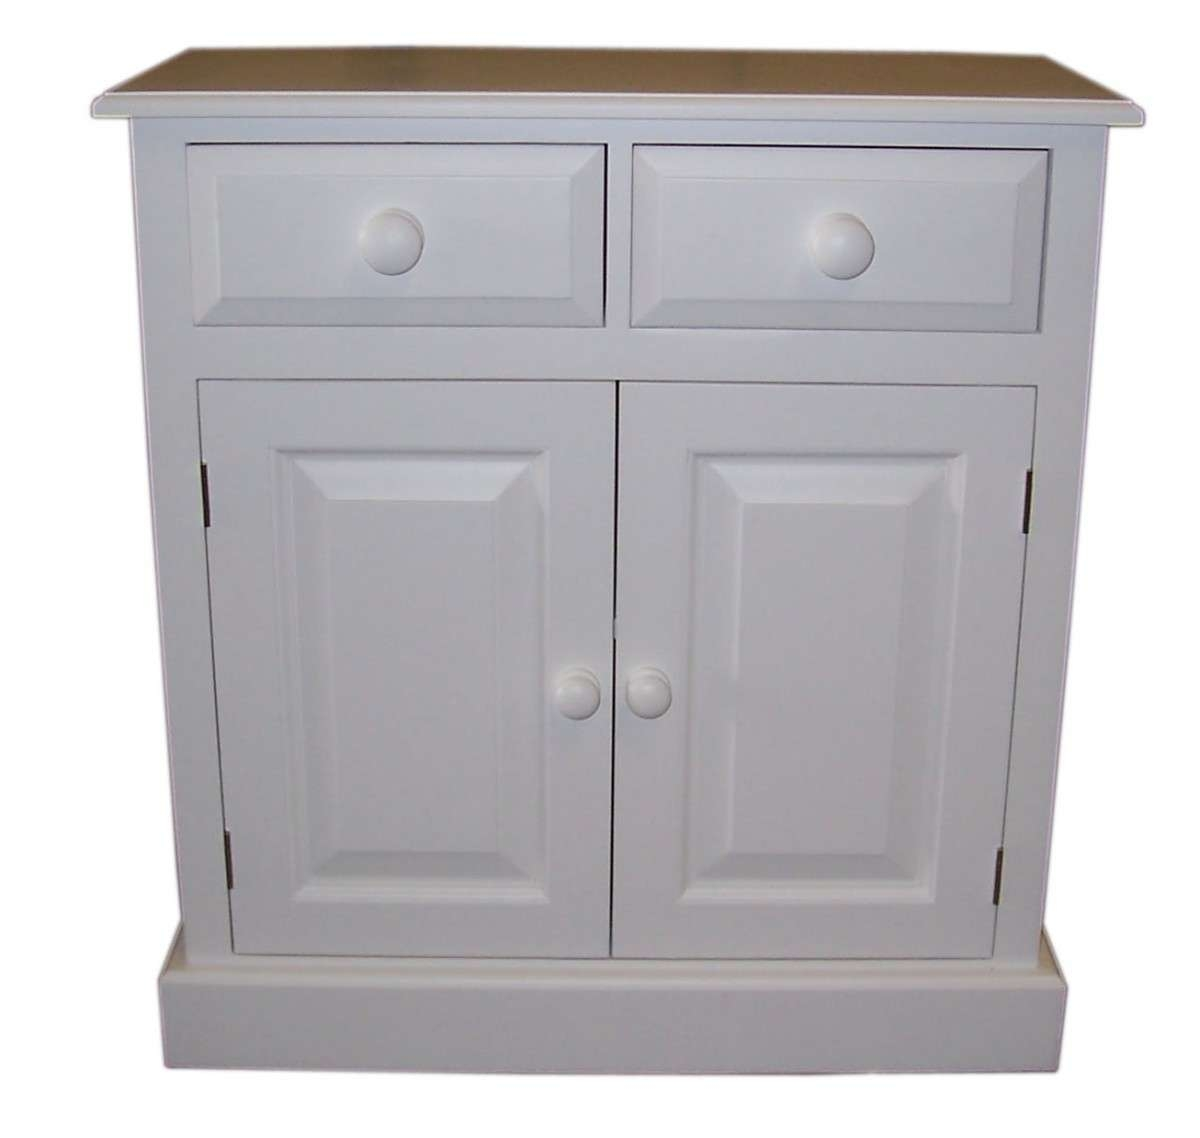 "Doors And Drawers Shallow Depth Sideboard – Available In 2'6"", 3 Throughout 14 Inch Deep Sideboards (View 14 of 20)"